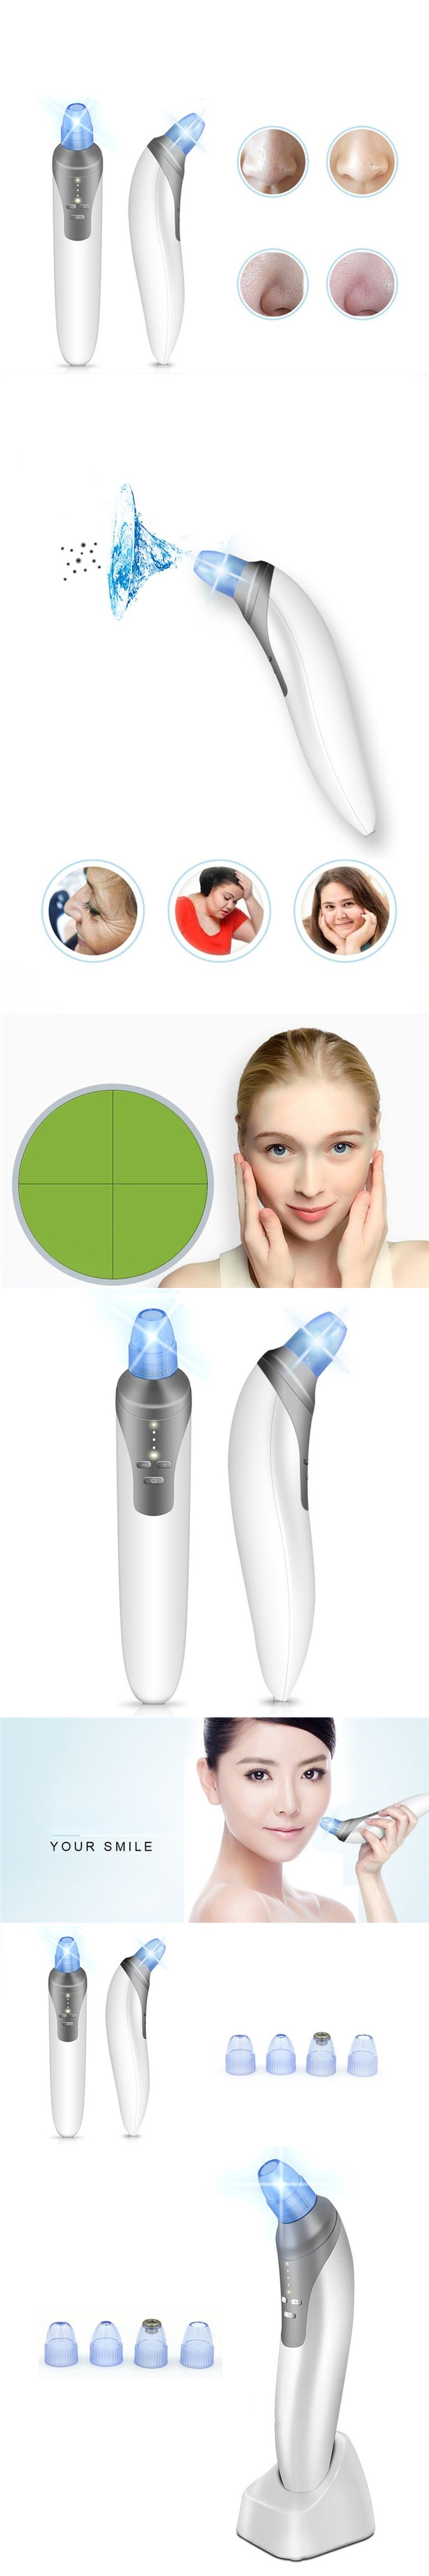 2017 Hot USB Electric Facial Pore Cleaner Suction Nose Blackhead Remover Pimple Acne Extractor Tool Beauty Machine Skin Care